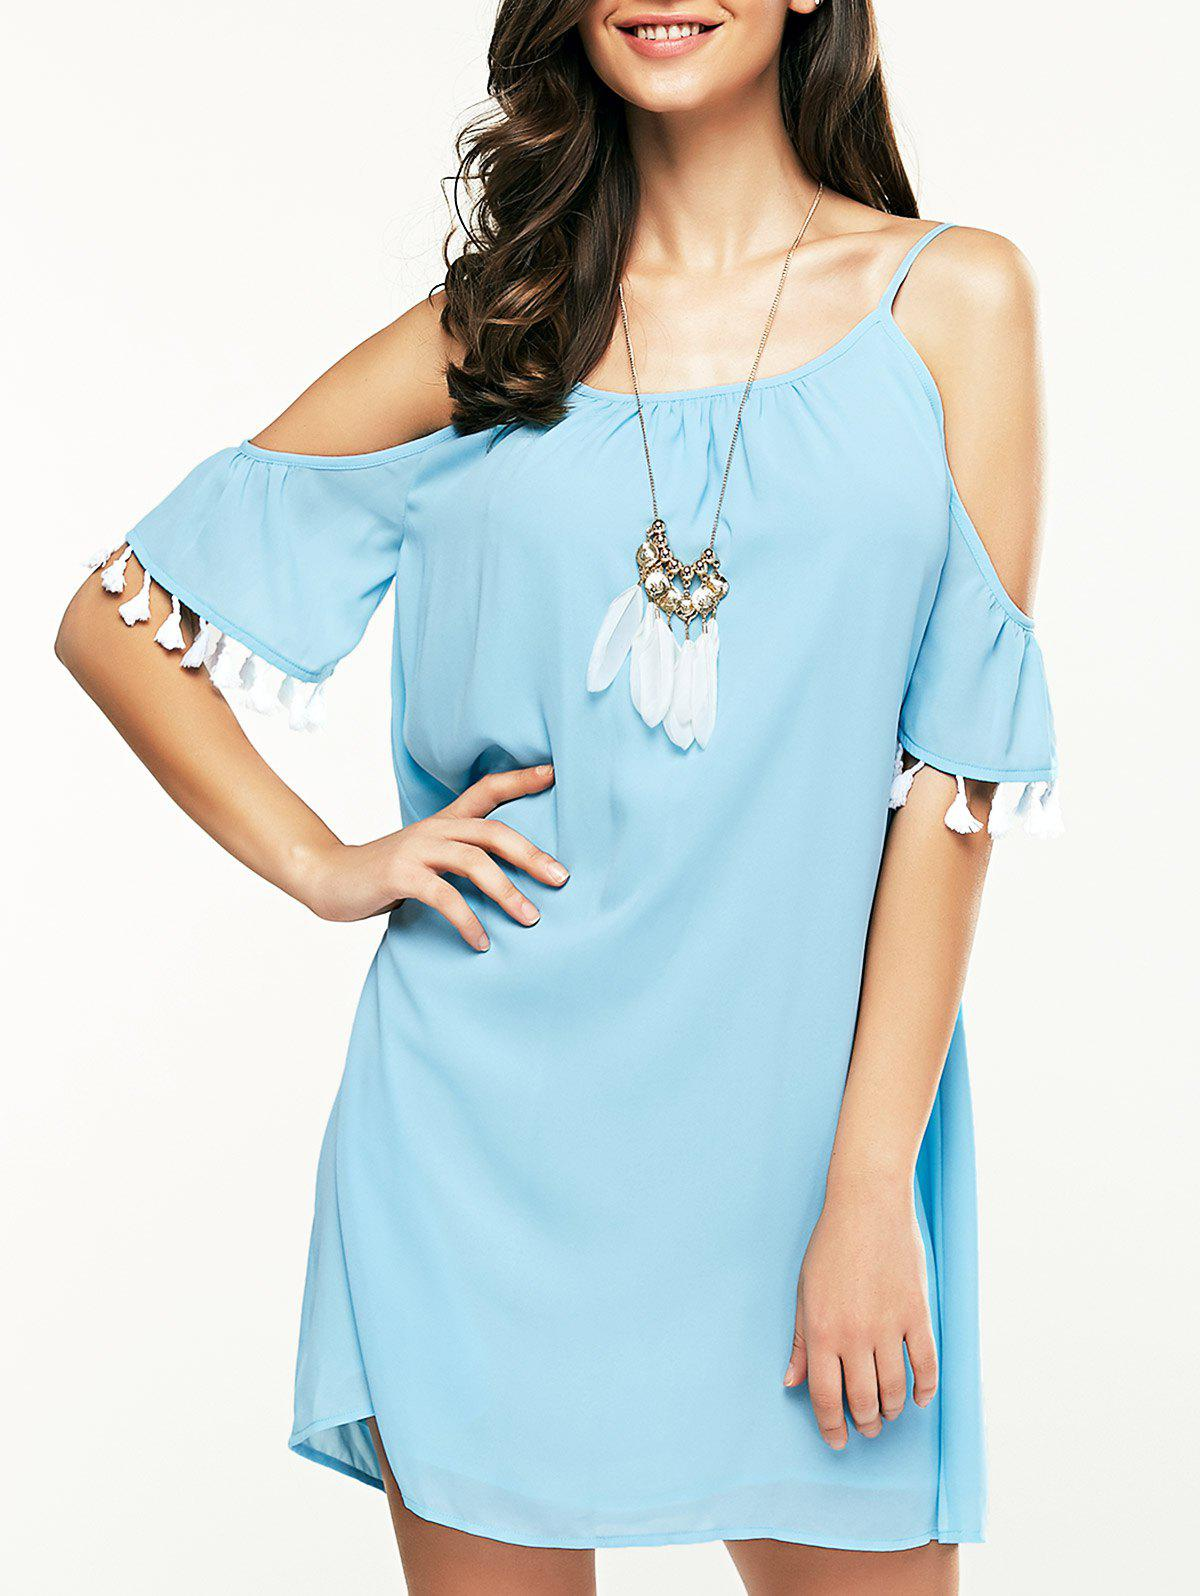 Stylish Women's Round Neck Cold Shoulder Fringe Dress - LAKE BLUE L